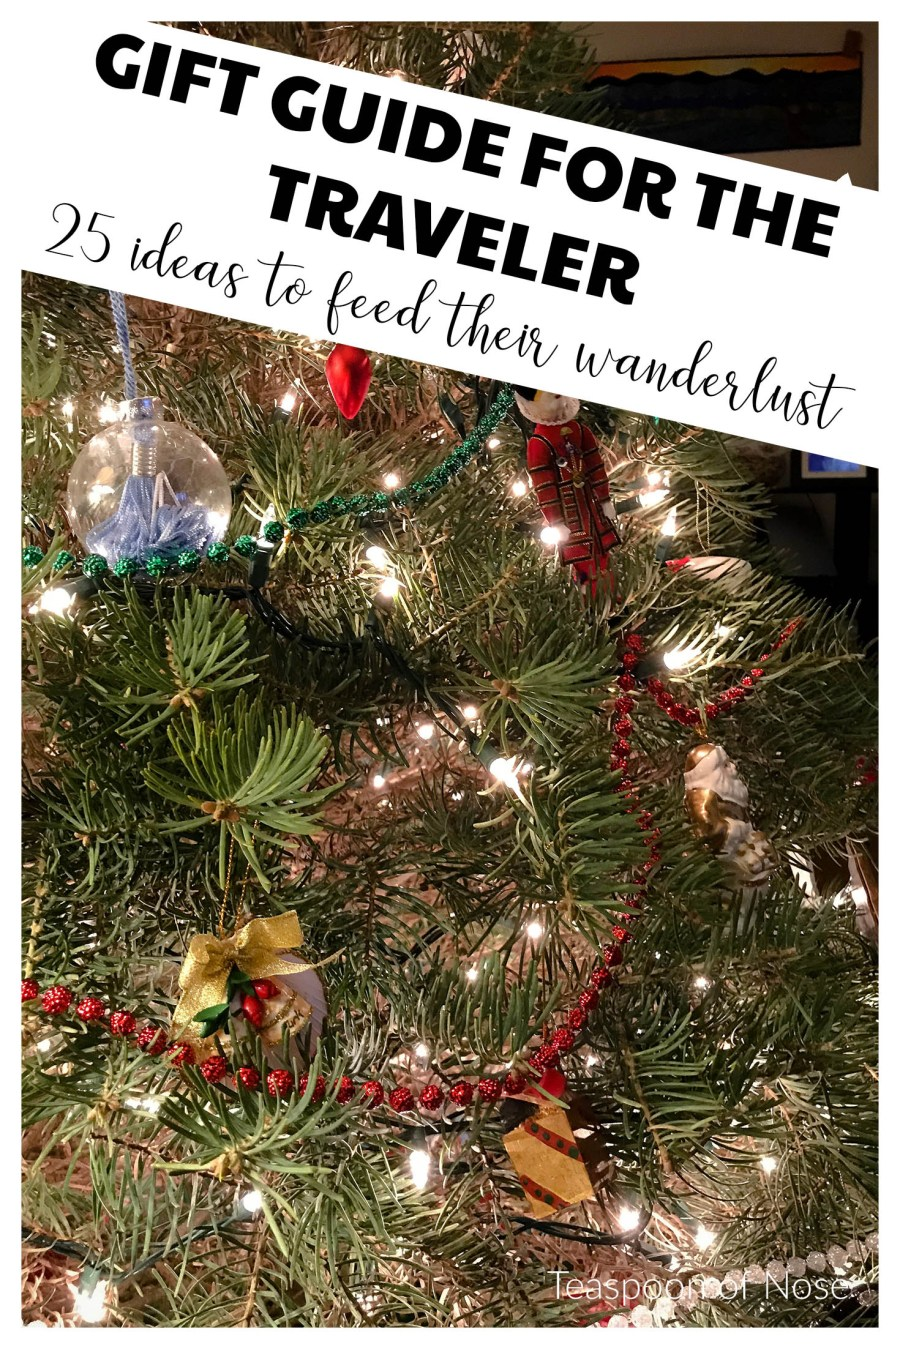 gift guide for the traveler! Here are 25 fantastic gift ideas to feed their wanderlust this Christmas.